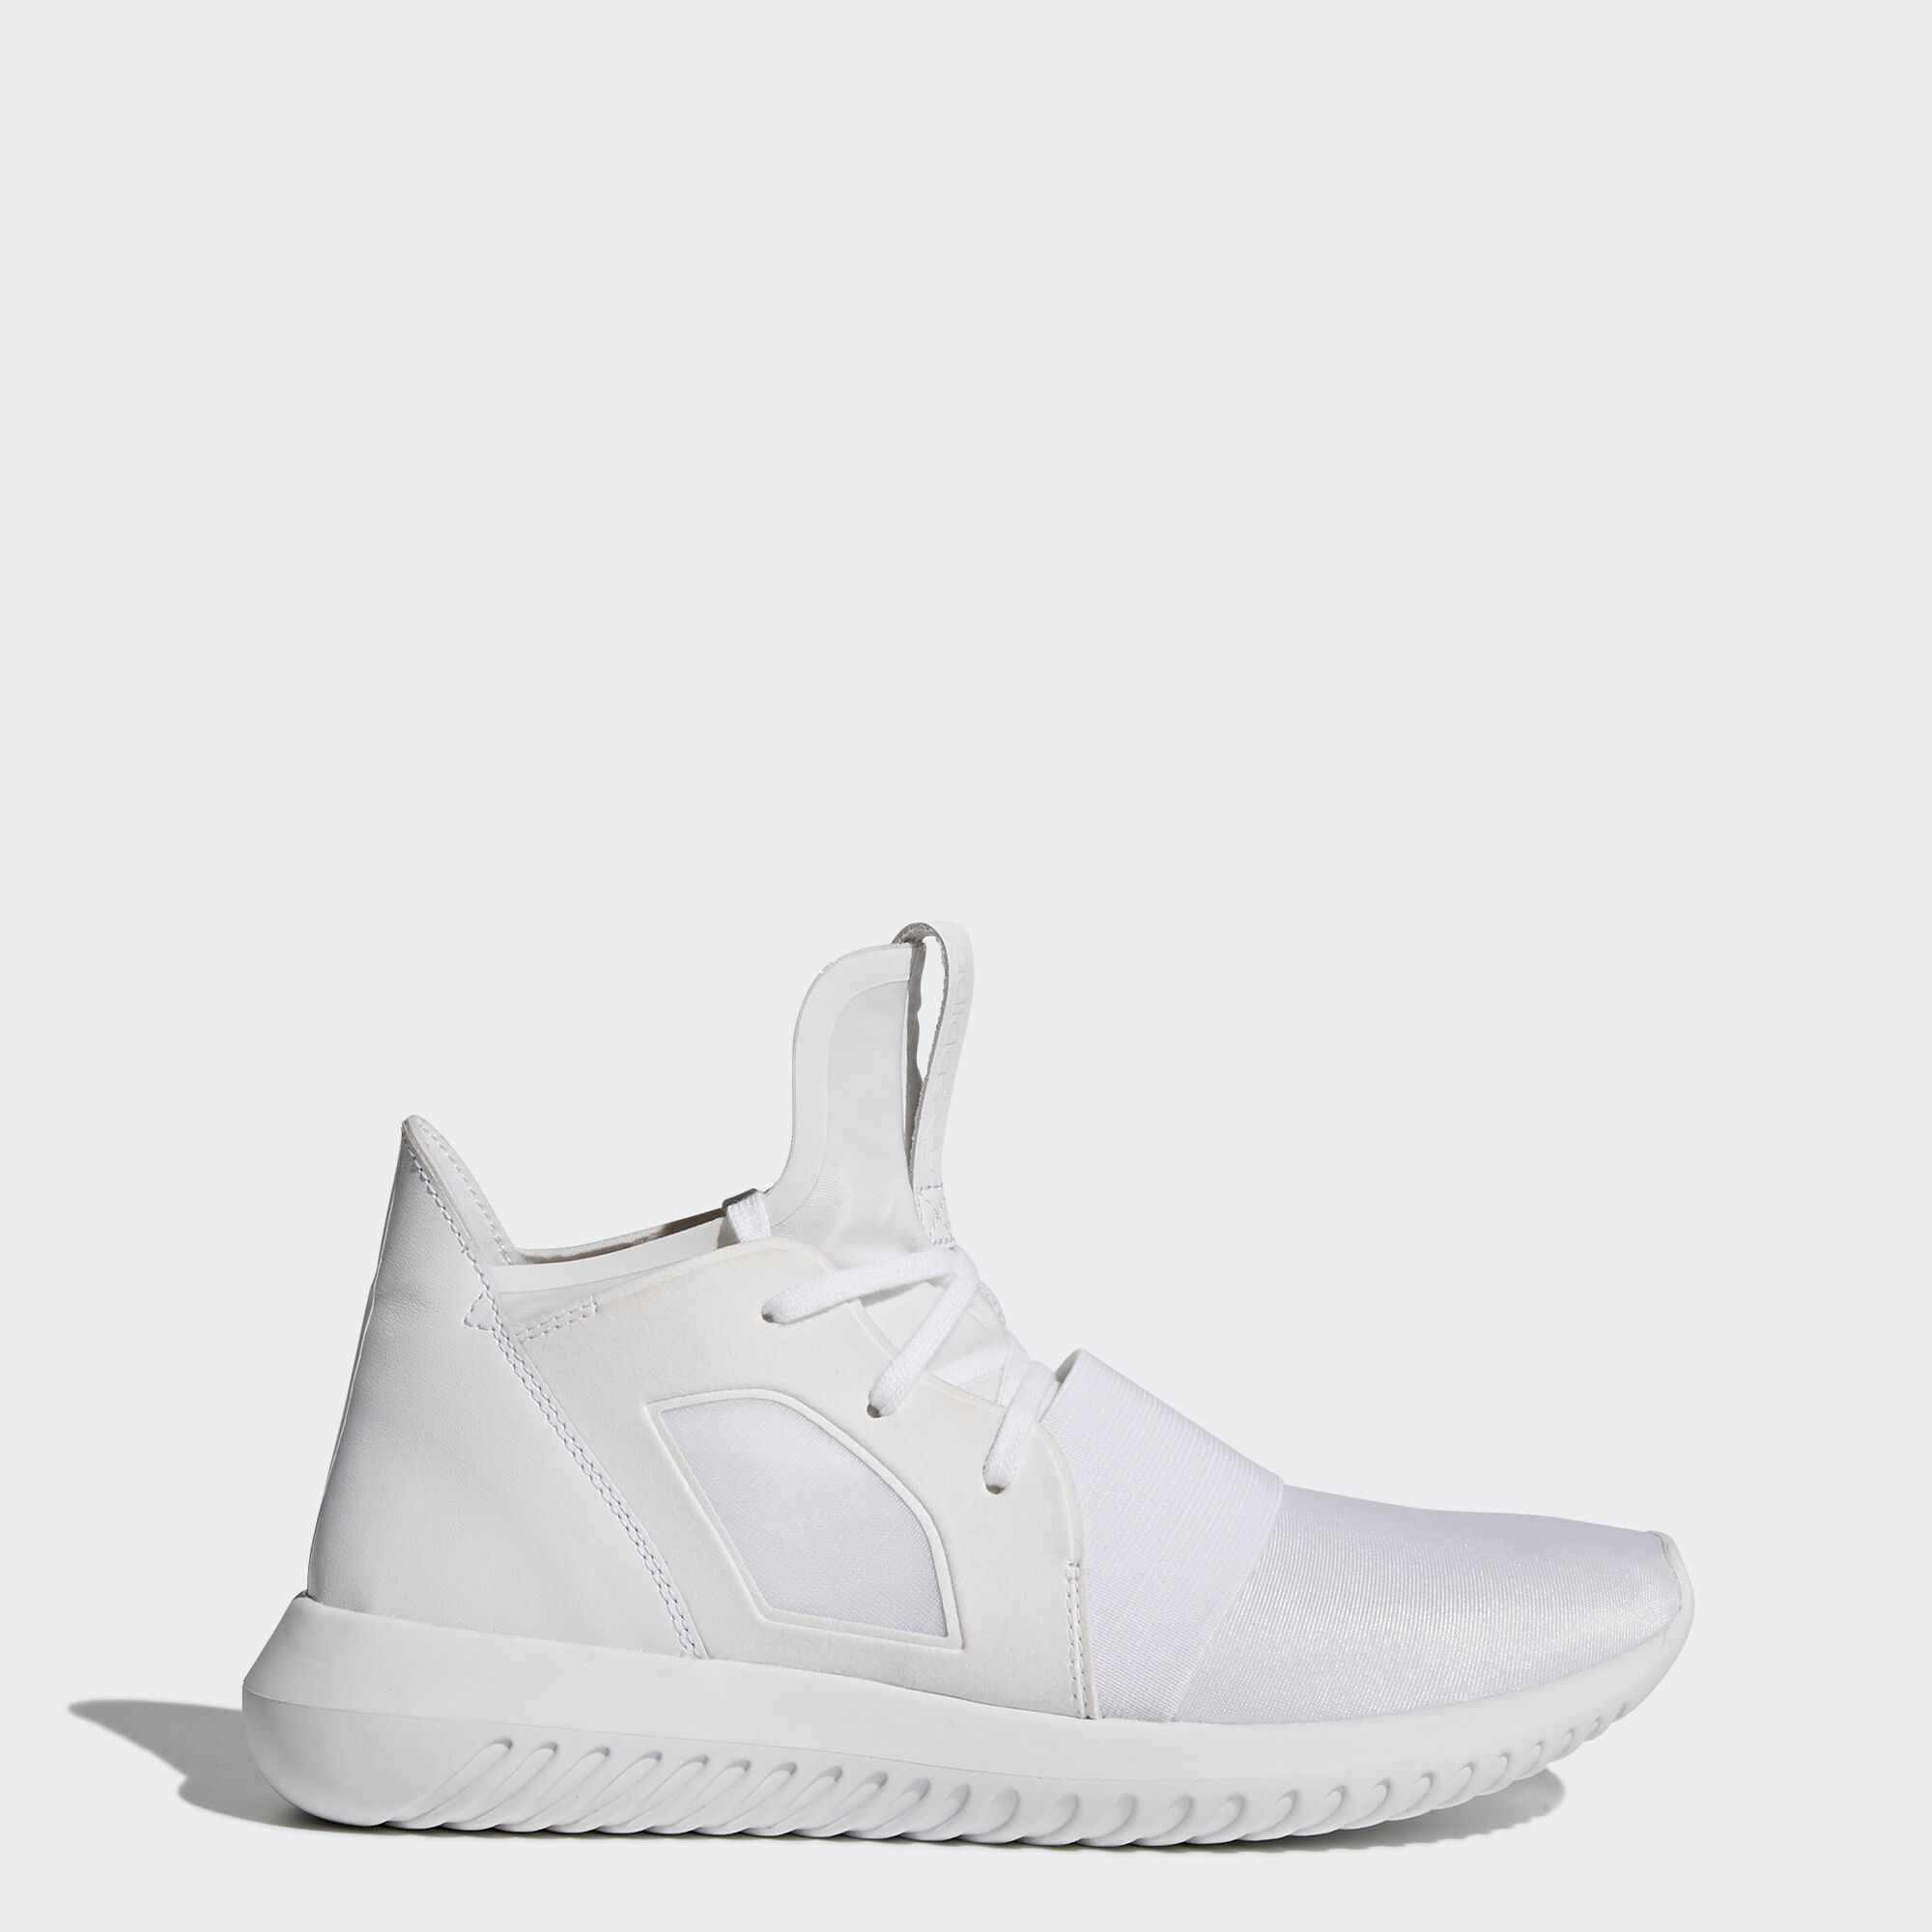 Adidas Tubular Womens Iridescent